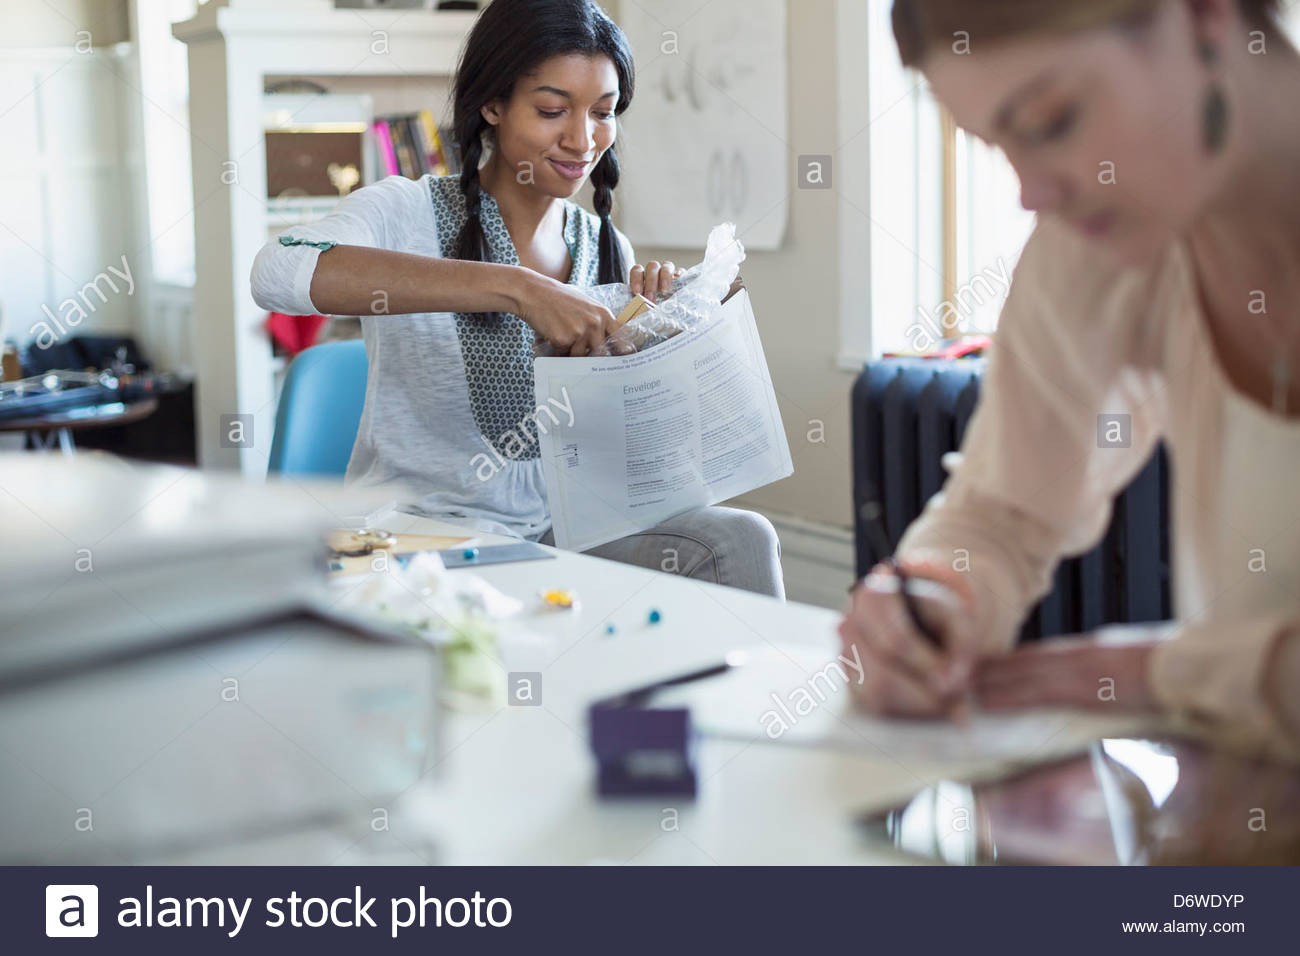 Happy female artist putting box in shipping envelope with colleague in foreground - Stock Image